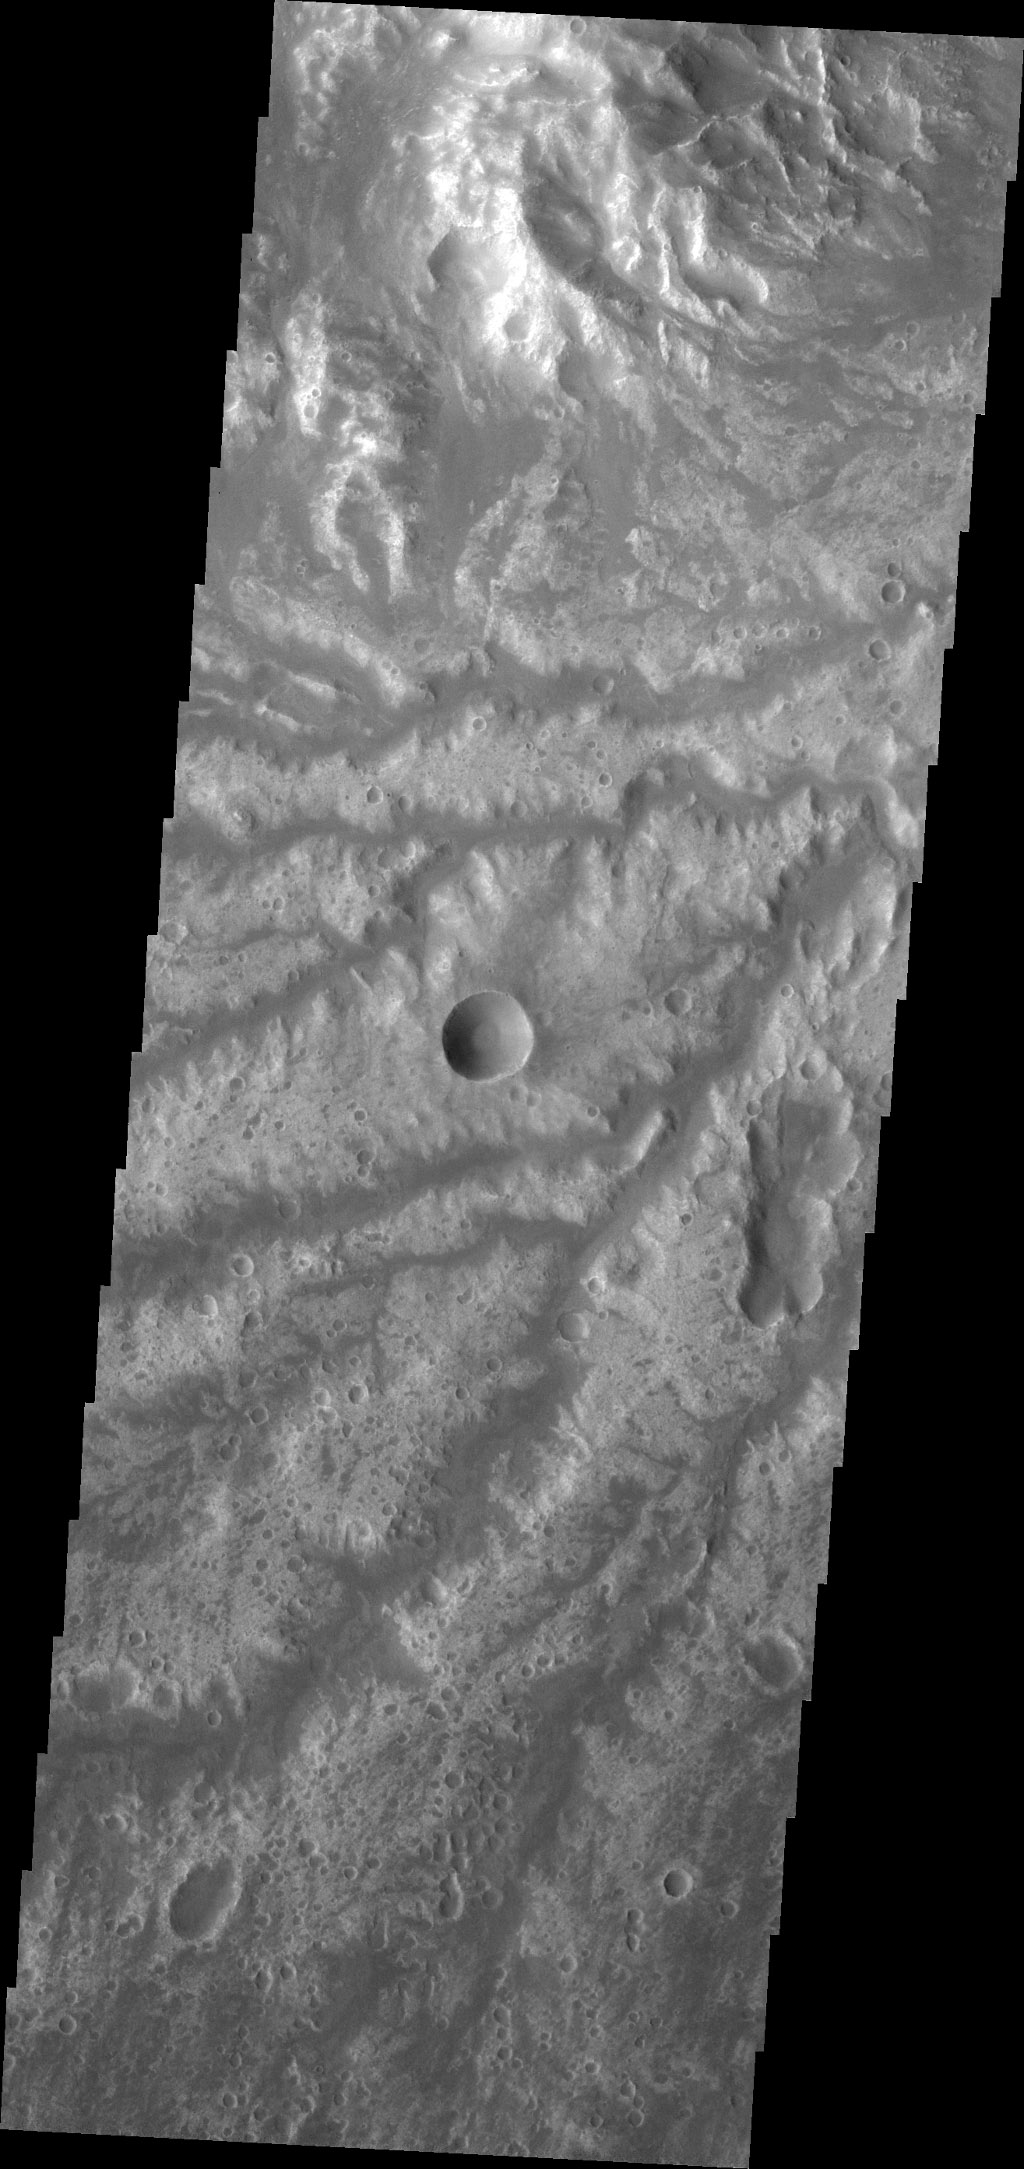 Today's VIS image shows more of the channel network that comprises Arda Valles.